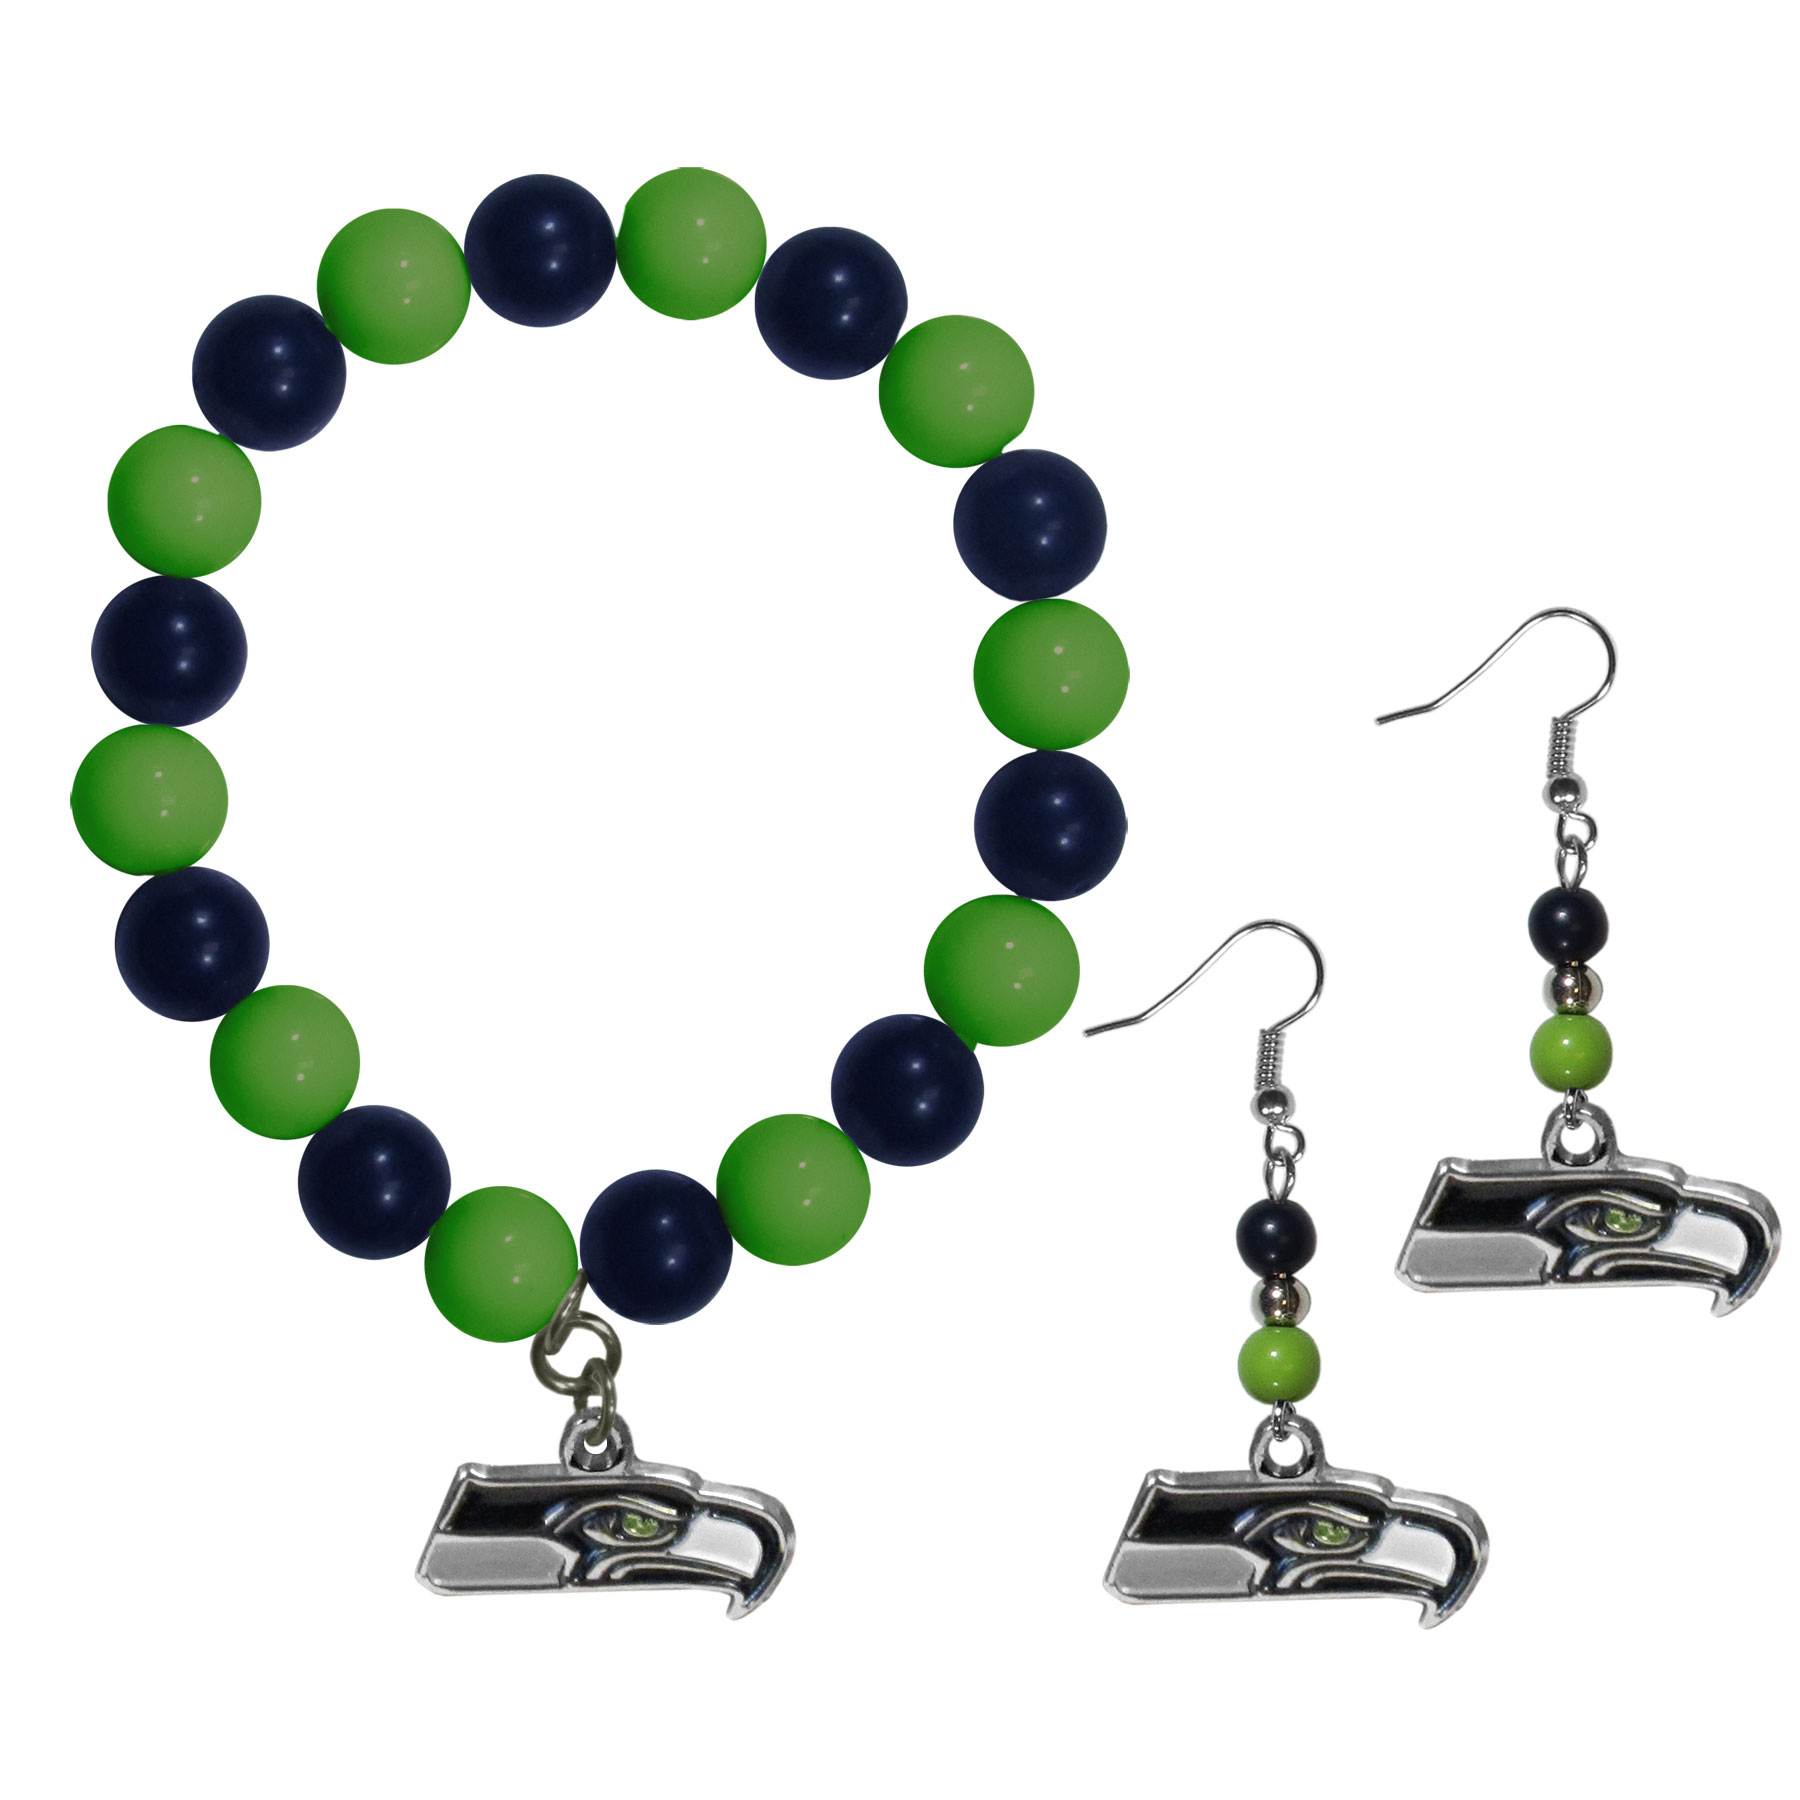 Seattle Seahawks Fan Bead Earrings and Bracelet Set - This fun and colorful Seattle Seahawks fan bead jewelry set is fun and casual with eye-catching beads in bright team colors. The fashionable dangle earrings feature a team colored beads that drop down to a carved and enameled charm. The stretch bracelet has larger matching beads that make a striking statement and have a matching team charm. These sassy yet sporty jewelry pieces make a perfect gift for any female fan. Spice up your game-day outfit with these fun colorful earrings and bracelet that are also cute enough for any day.